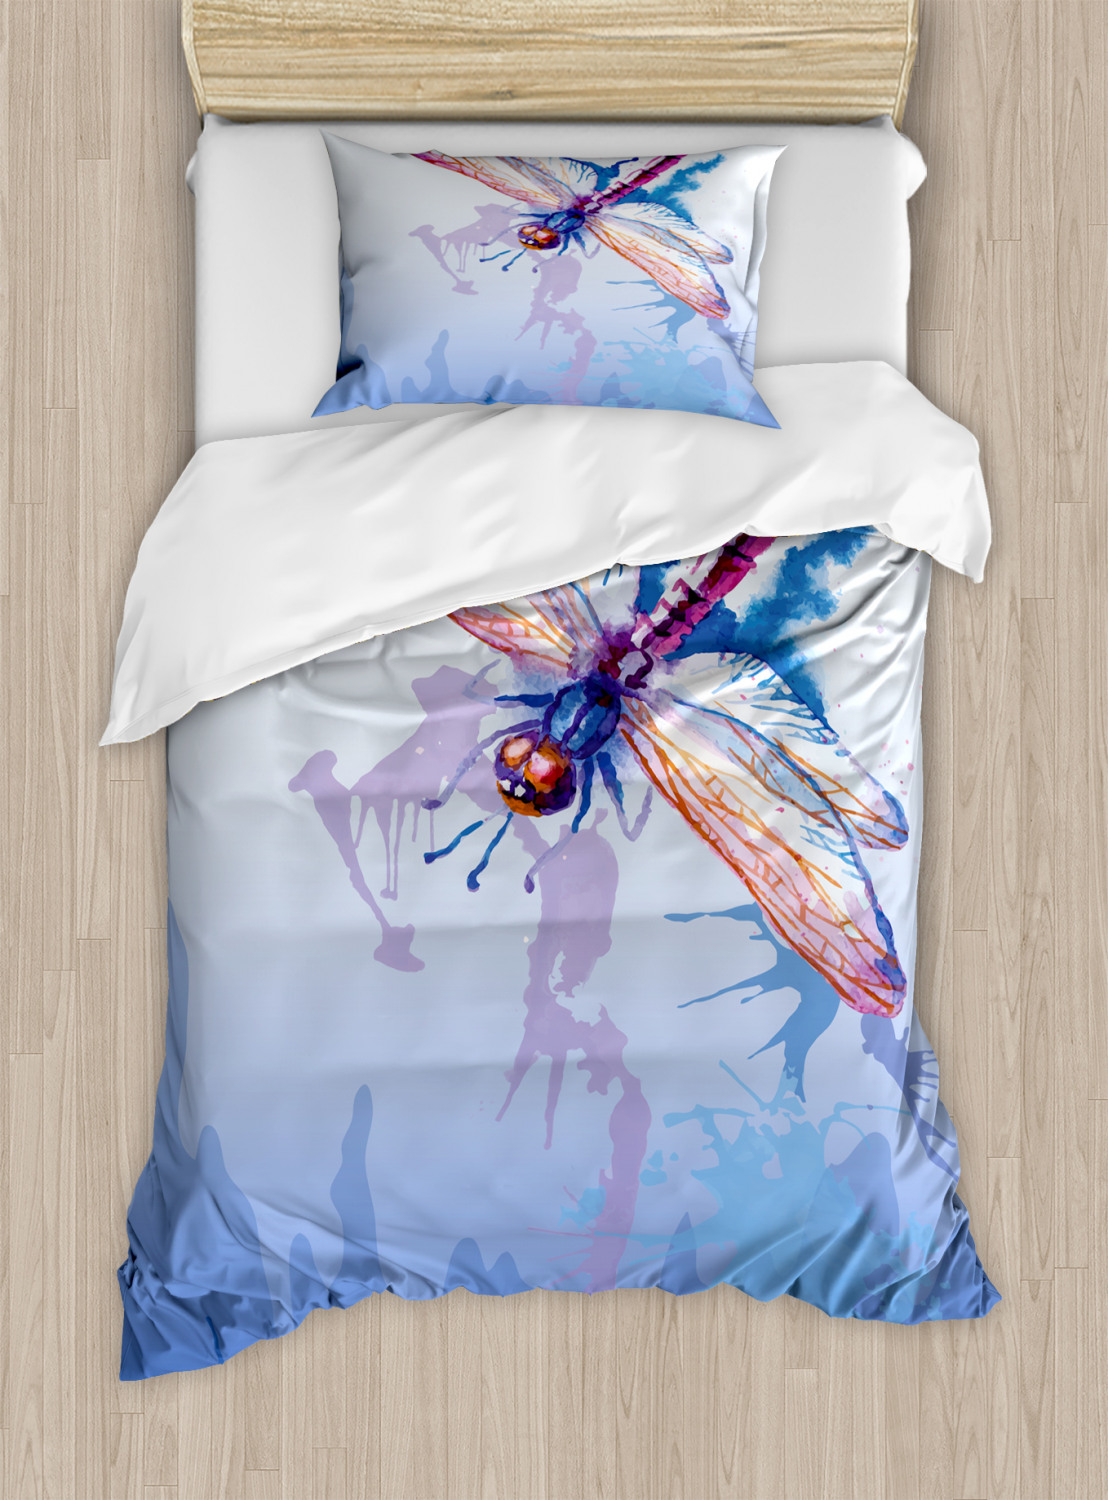 Colorful Duvet Cover Set with Pillow Shams Abstract Dragonfly Print